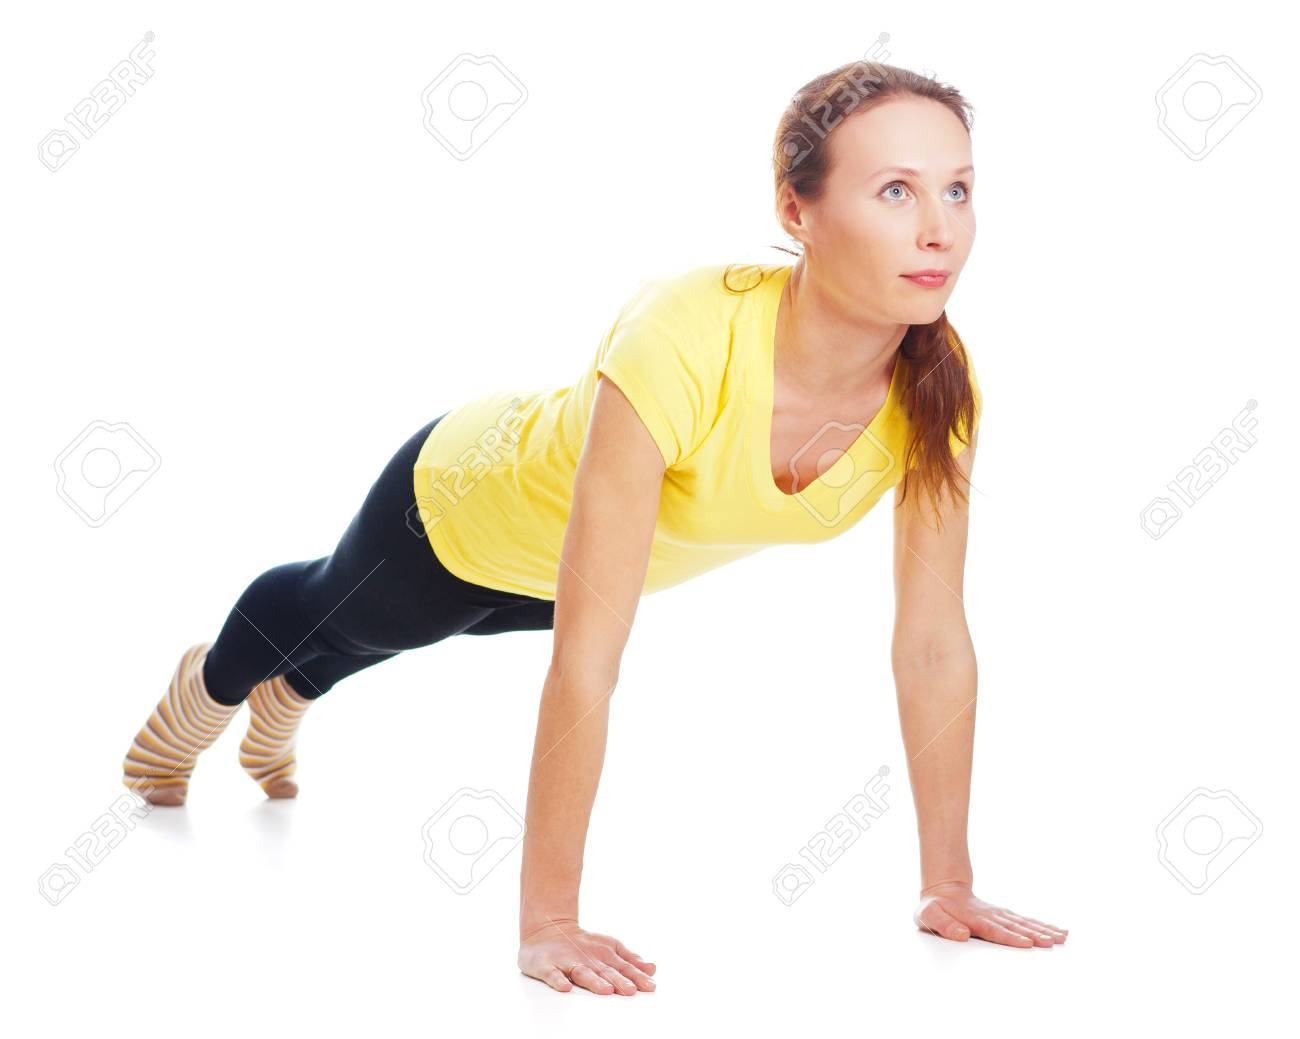 Young woman doing yoga exercise on a white background. Stock Photo - 19193969